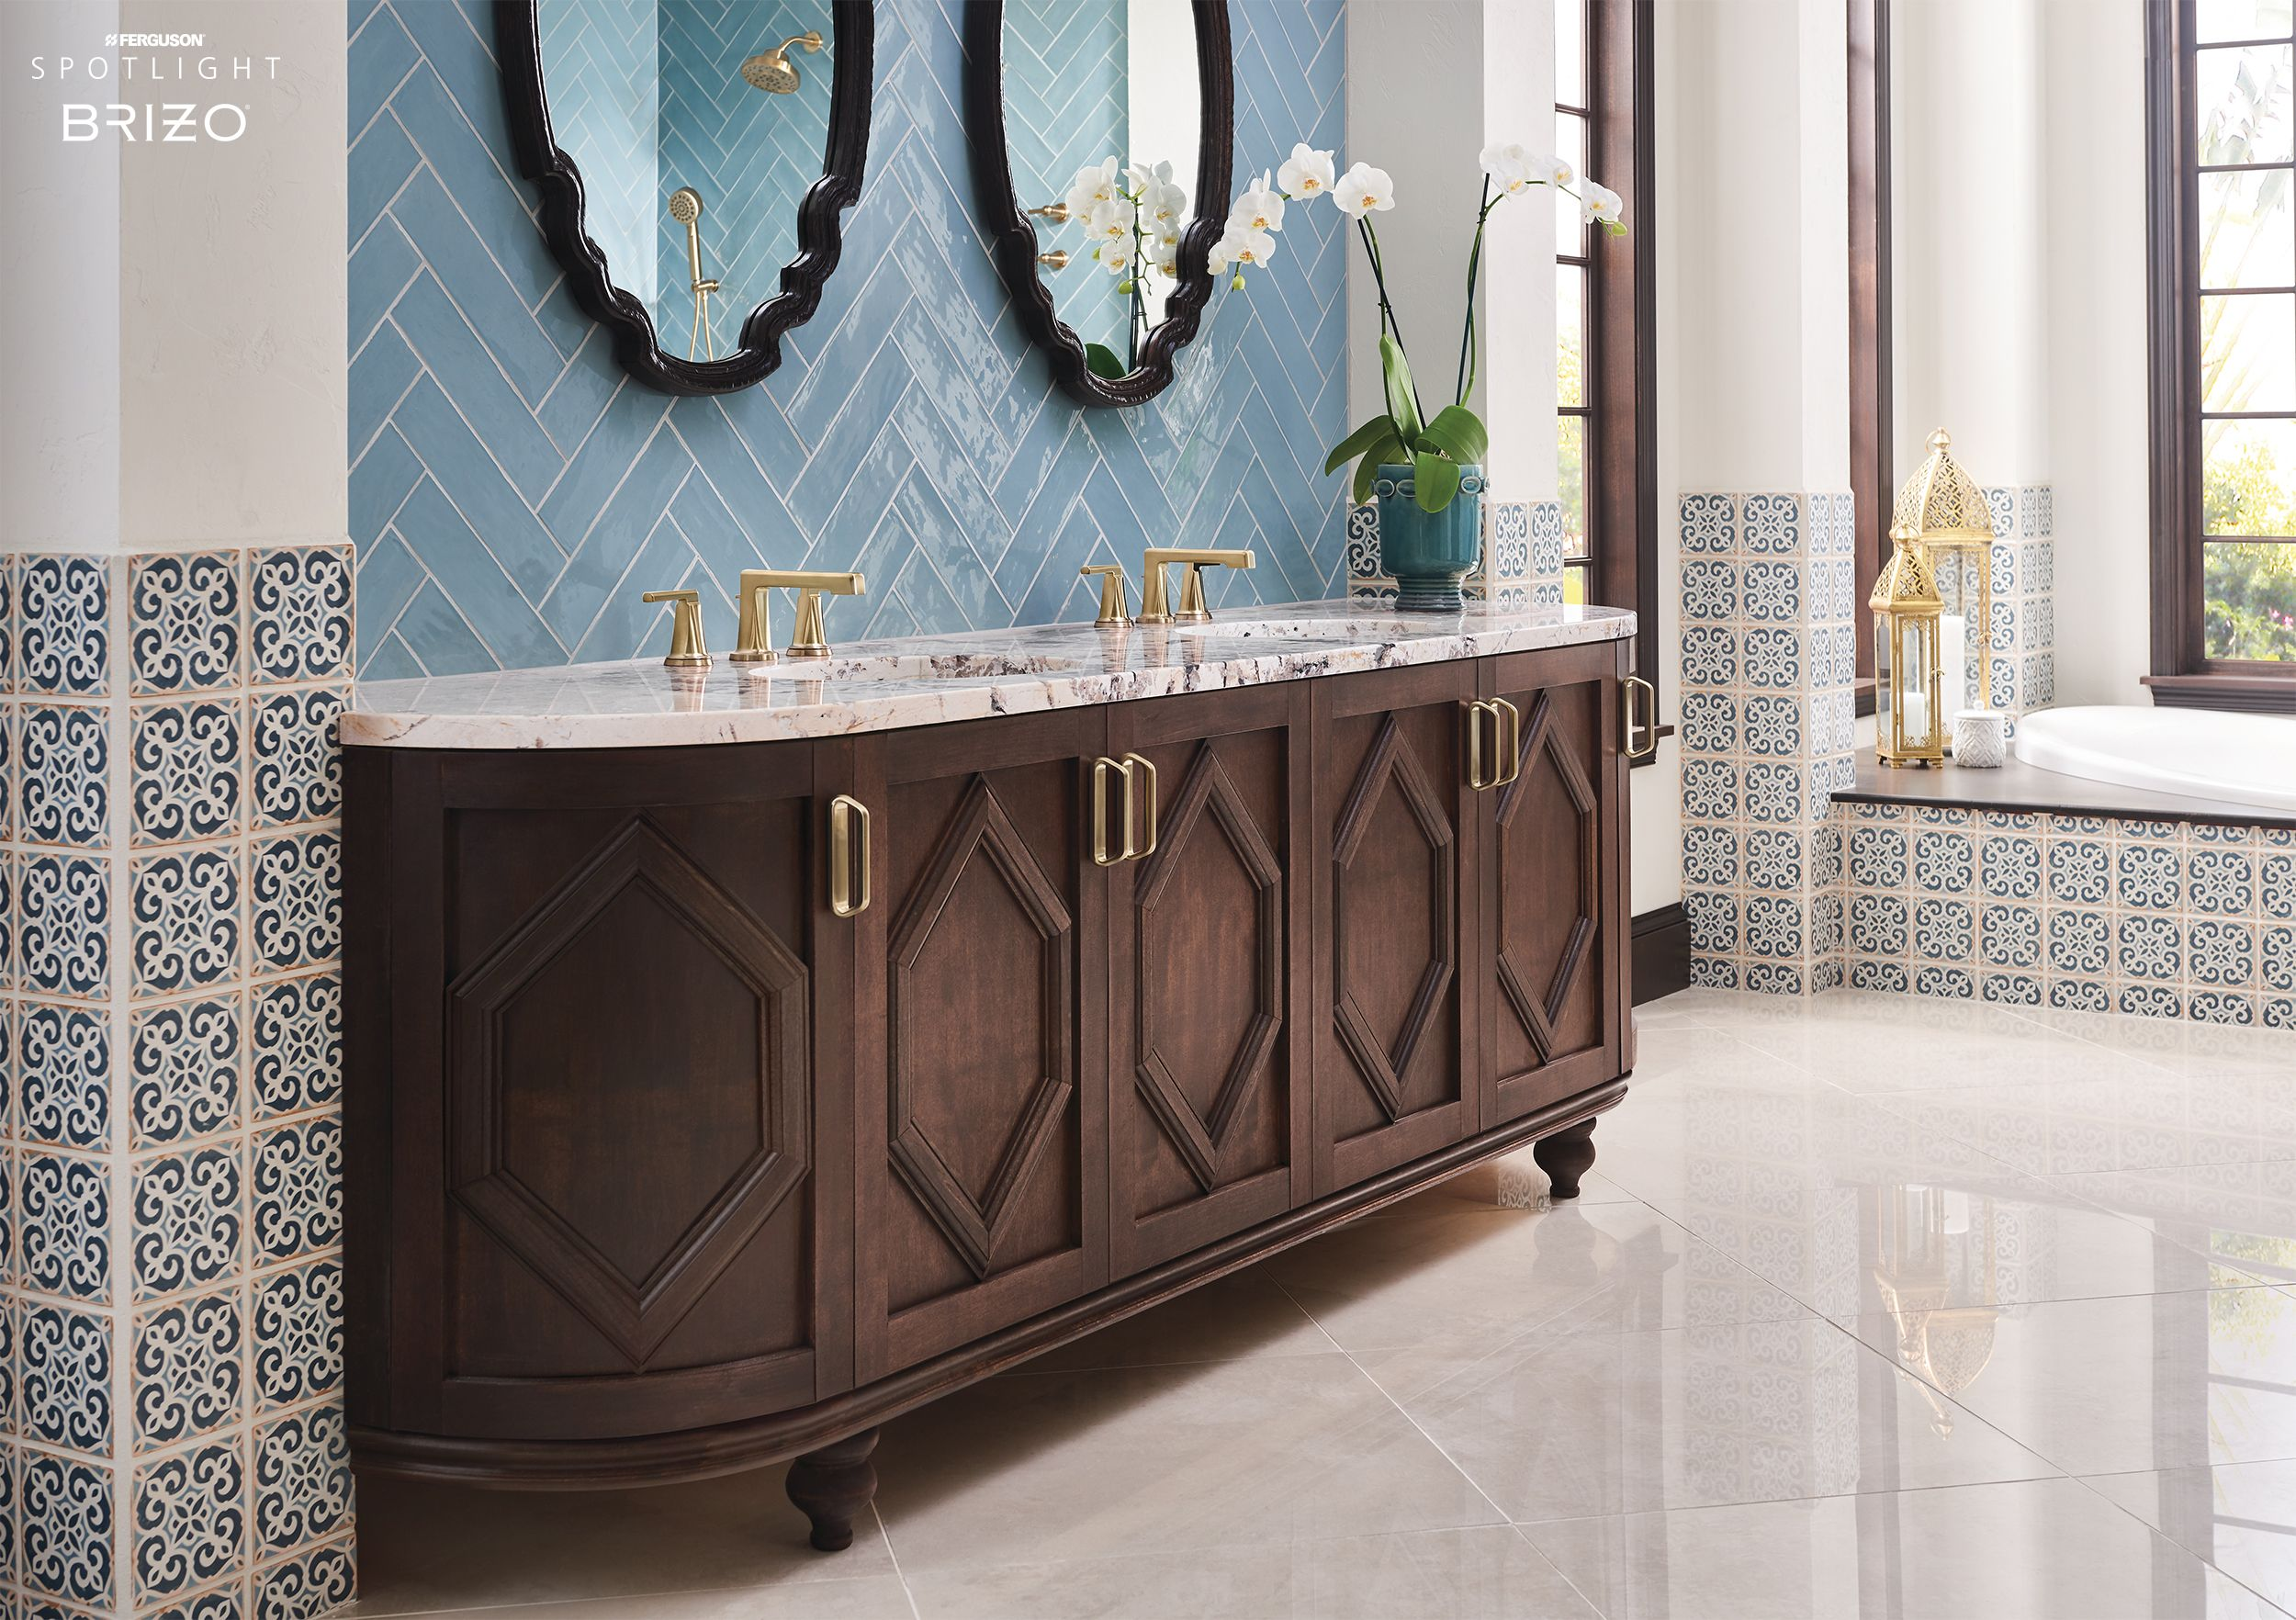 Brizo® Levoir™ Bath Collection | Ferguson Spotlight in 2019 | Bath